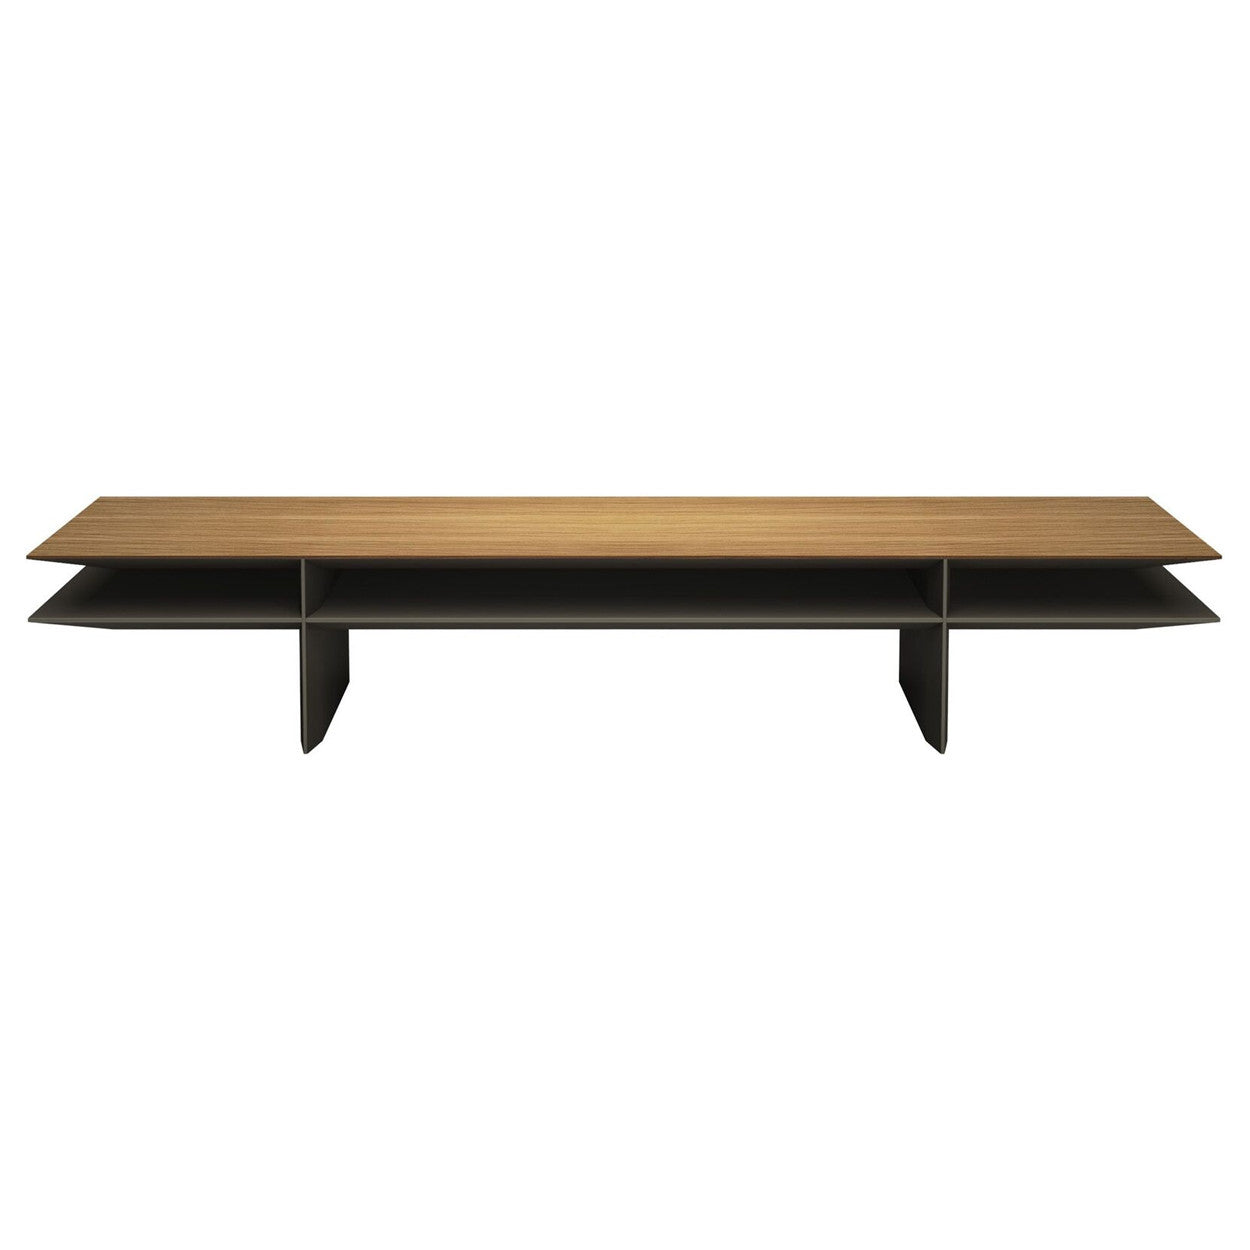 Modloft Kensington Coffee Table